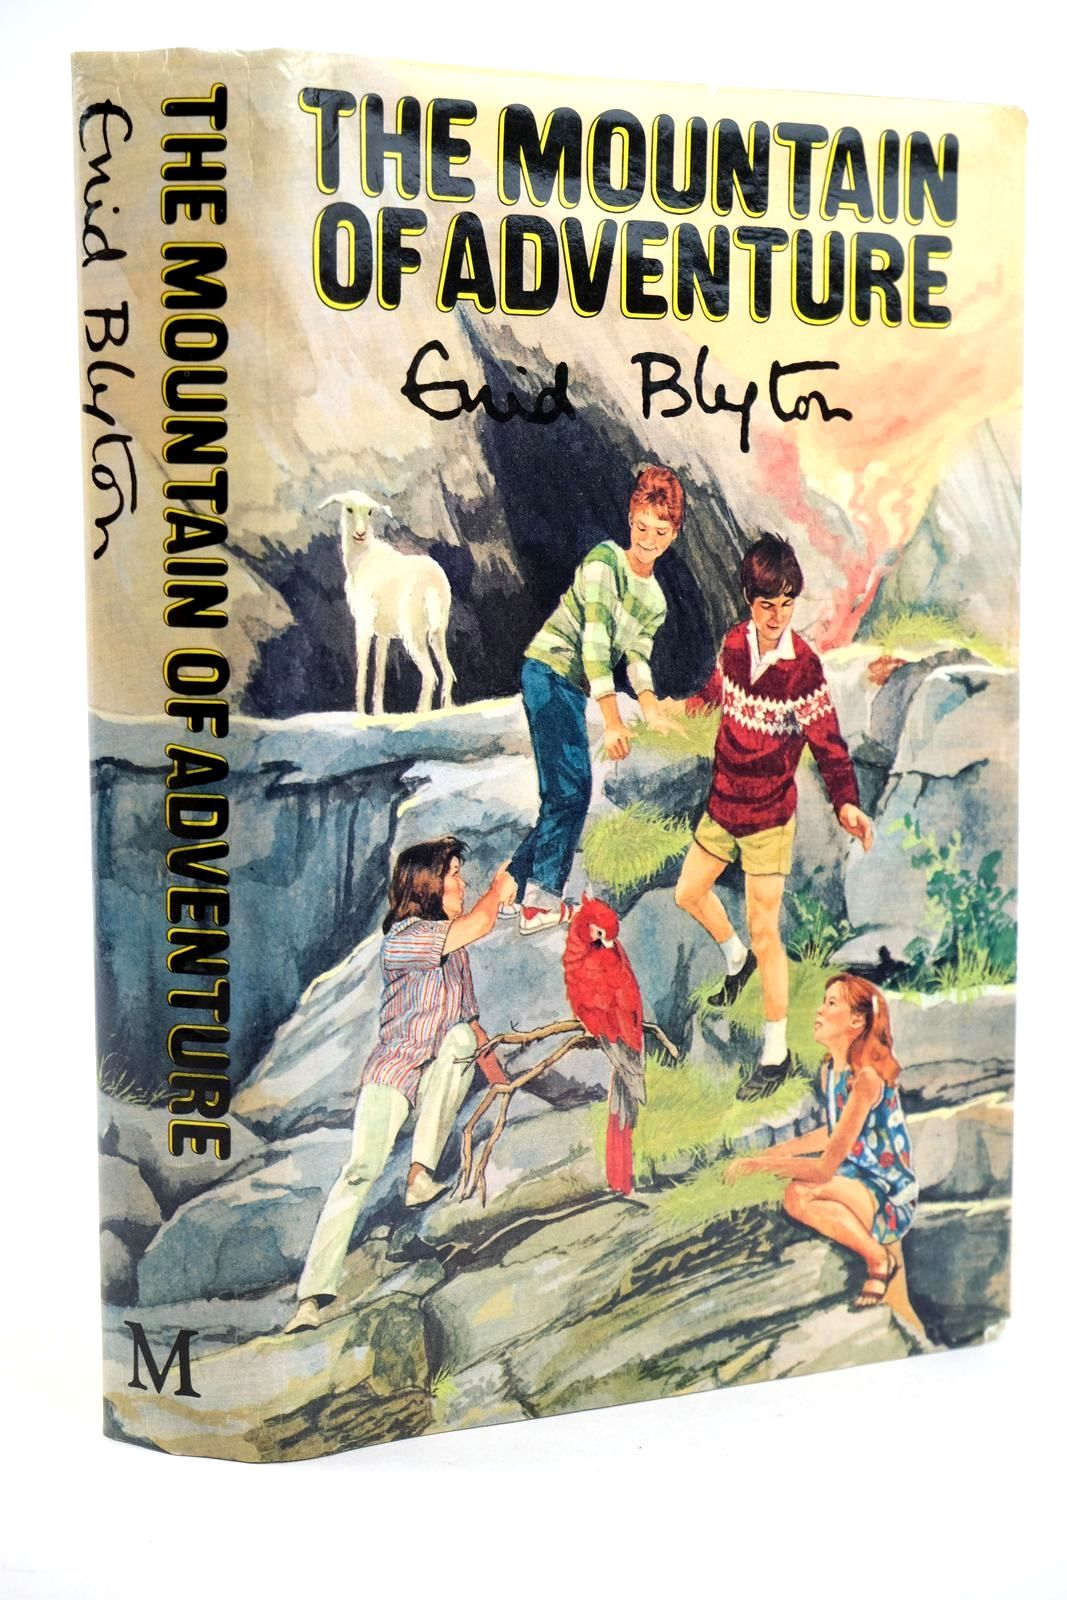 Photo of THE MOUNTAIN OF ADVENTURE written by Blyton, Enid illustrated by Tresilian, Stuart published by Macmillan & Co. Ltd. (STOCK CODE: 1319115)  for sale by Stella & Rose's Books